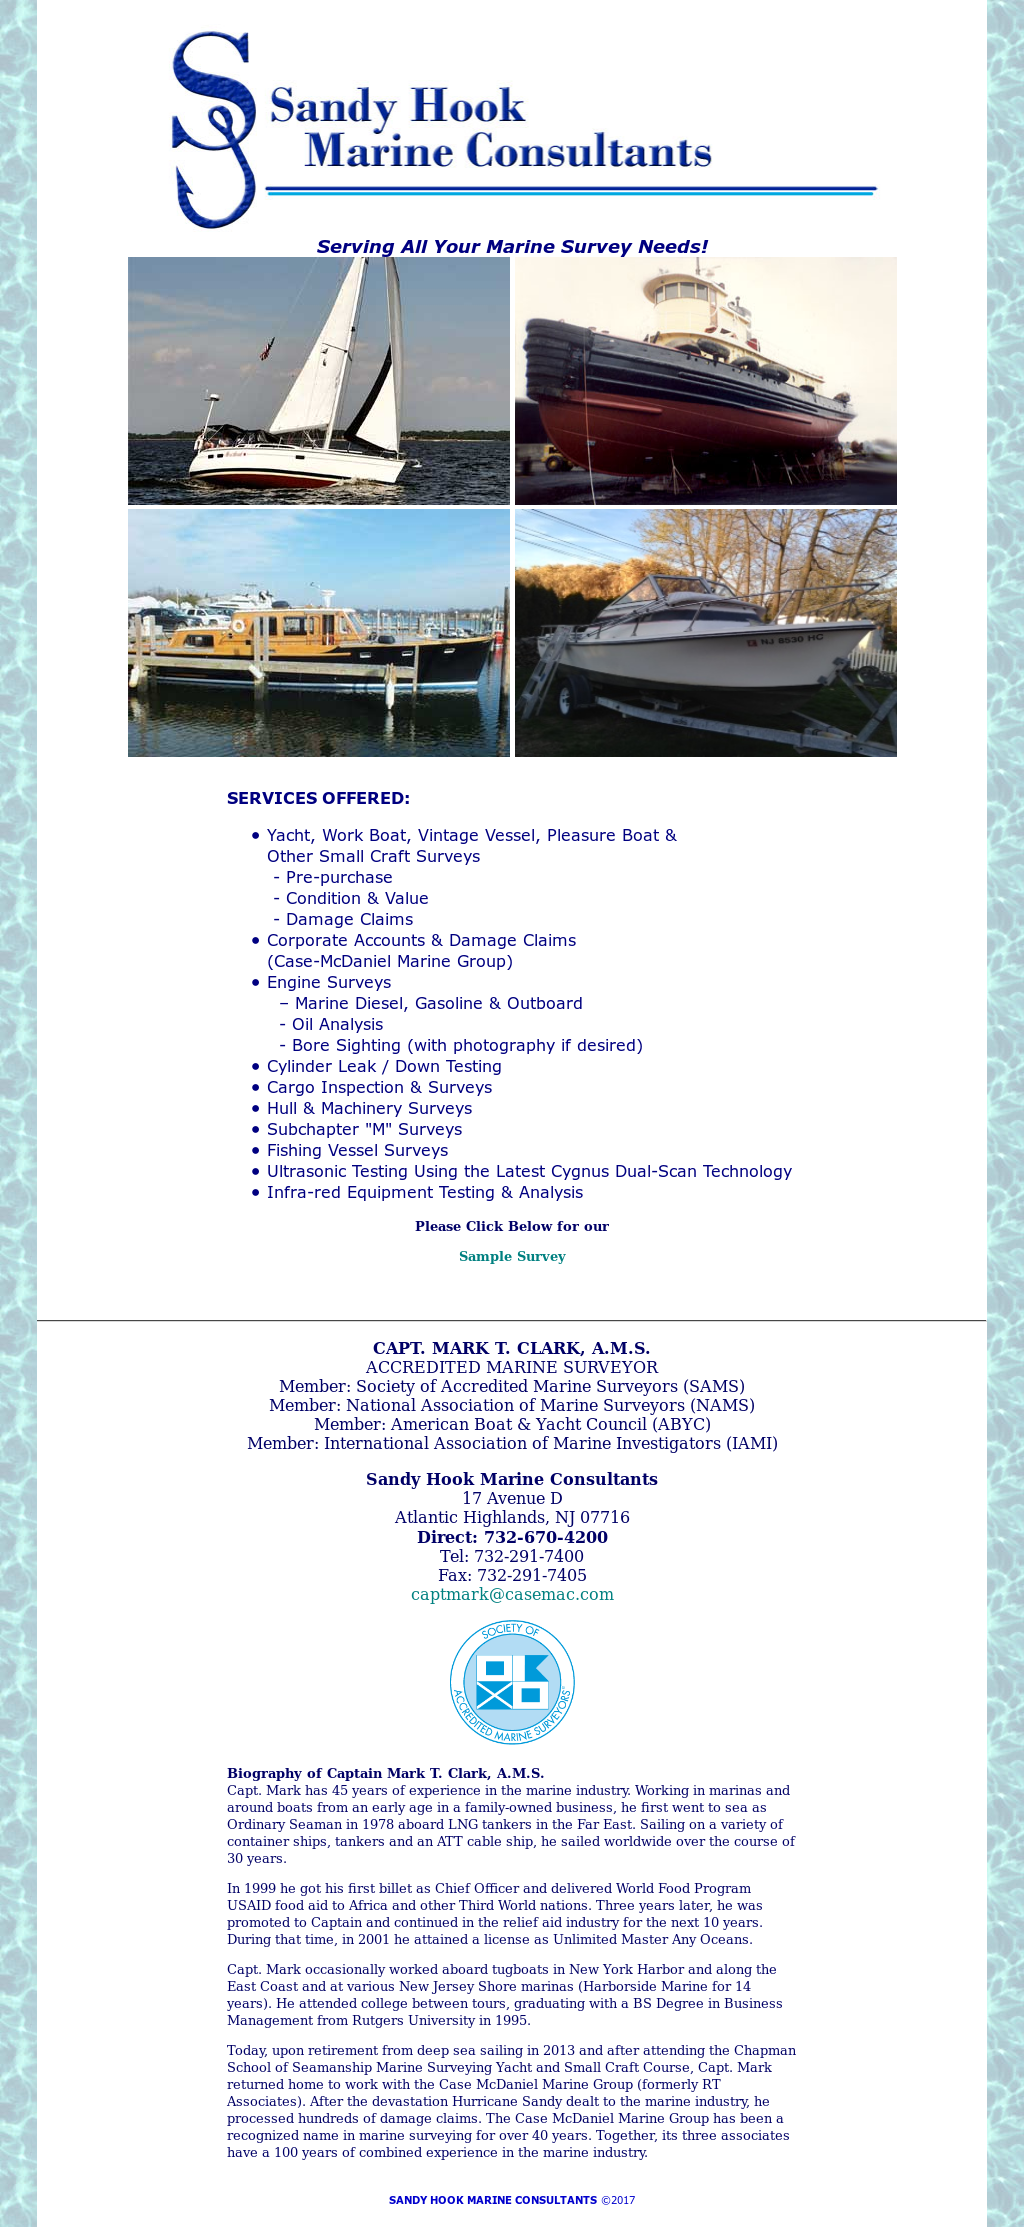 Sandyhookmarineconsulting Competitors, Revenue and Employees